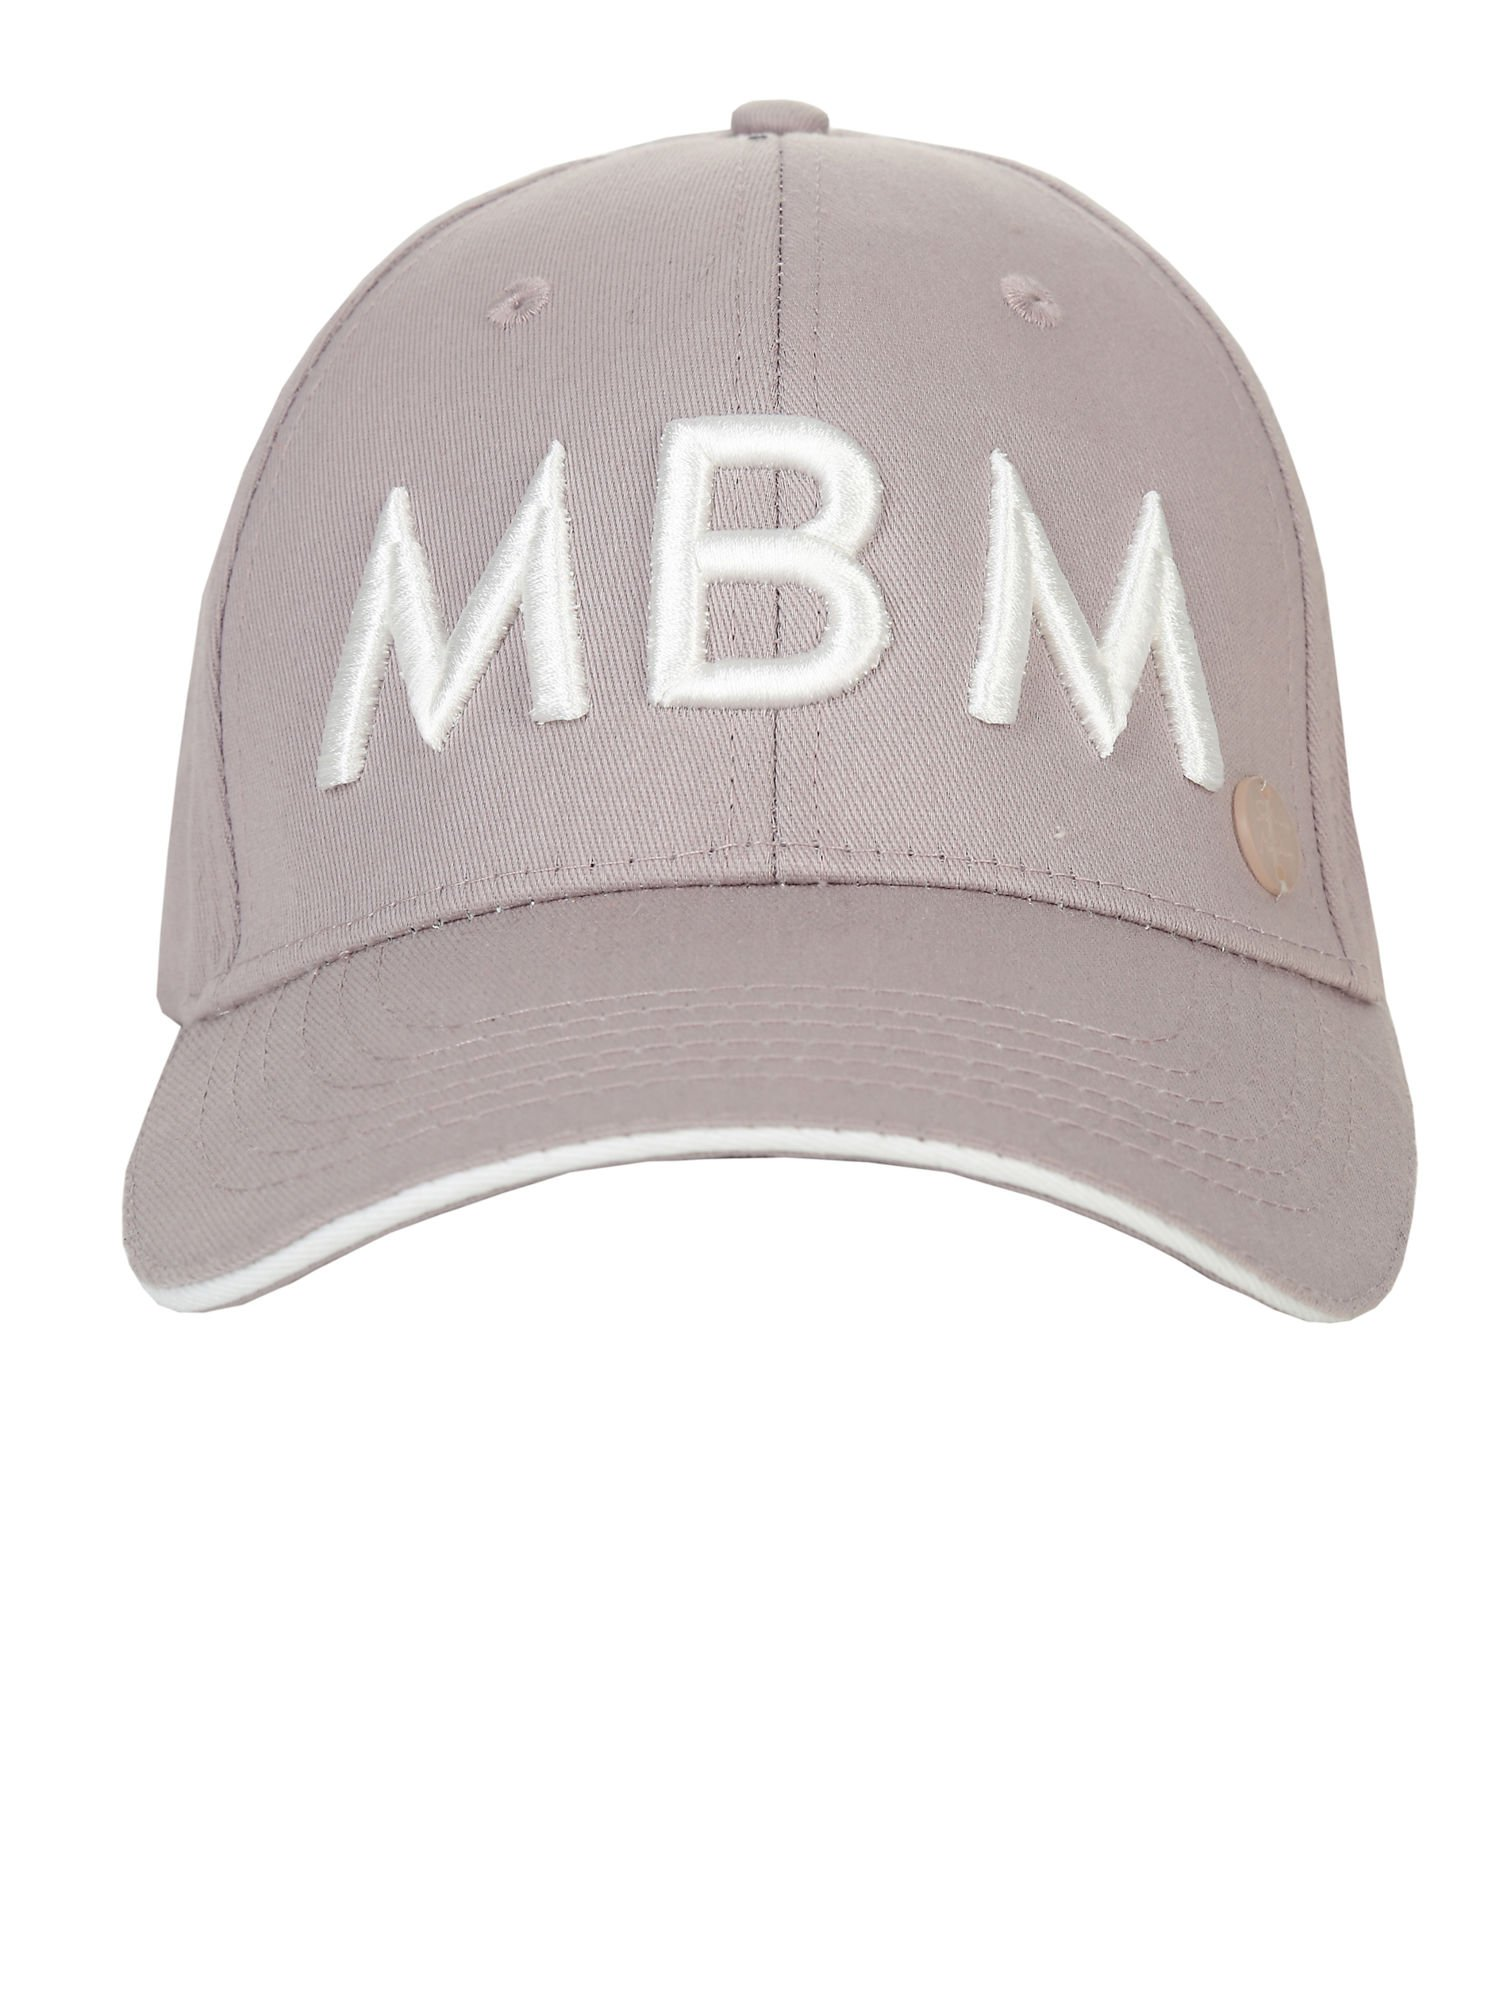 9c147abe2a239 ... Clothing · Accessories  MBM cap. MBM cap ...